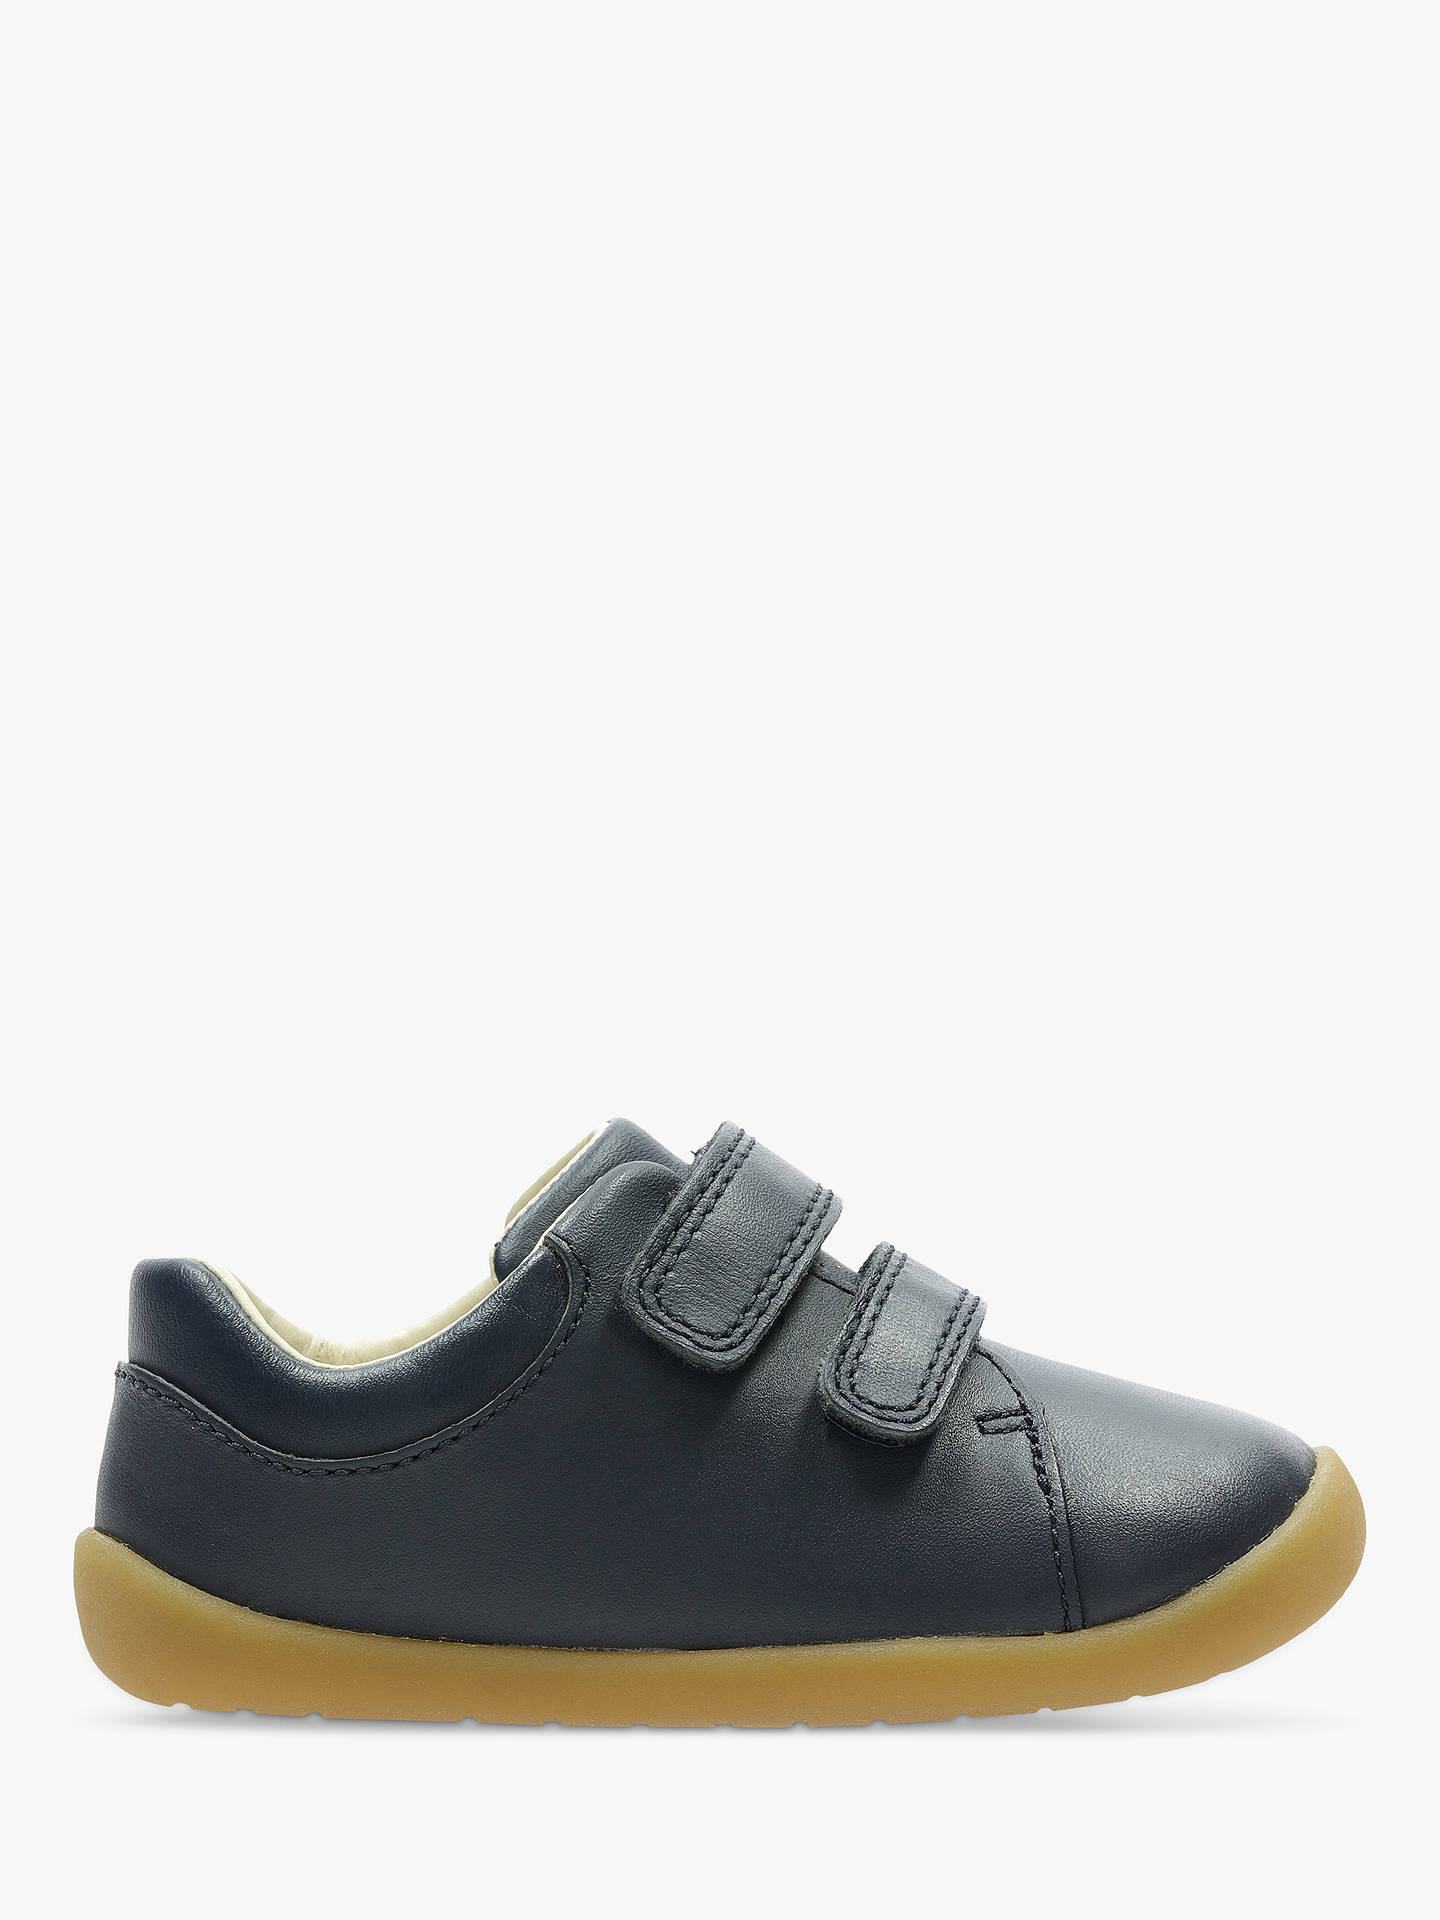 Reliable Clarks 4.5 G Canvas Shoes Special Buy Boys' Shoes